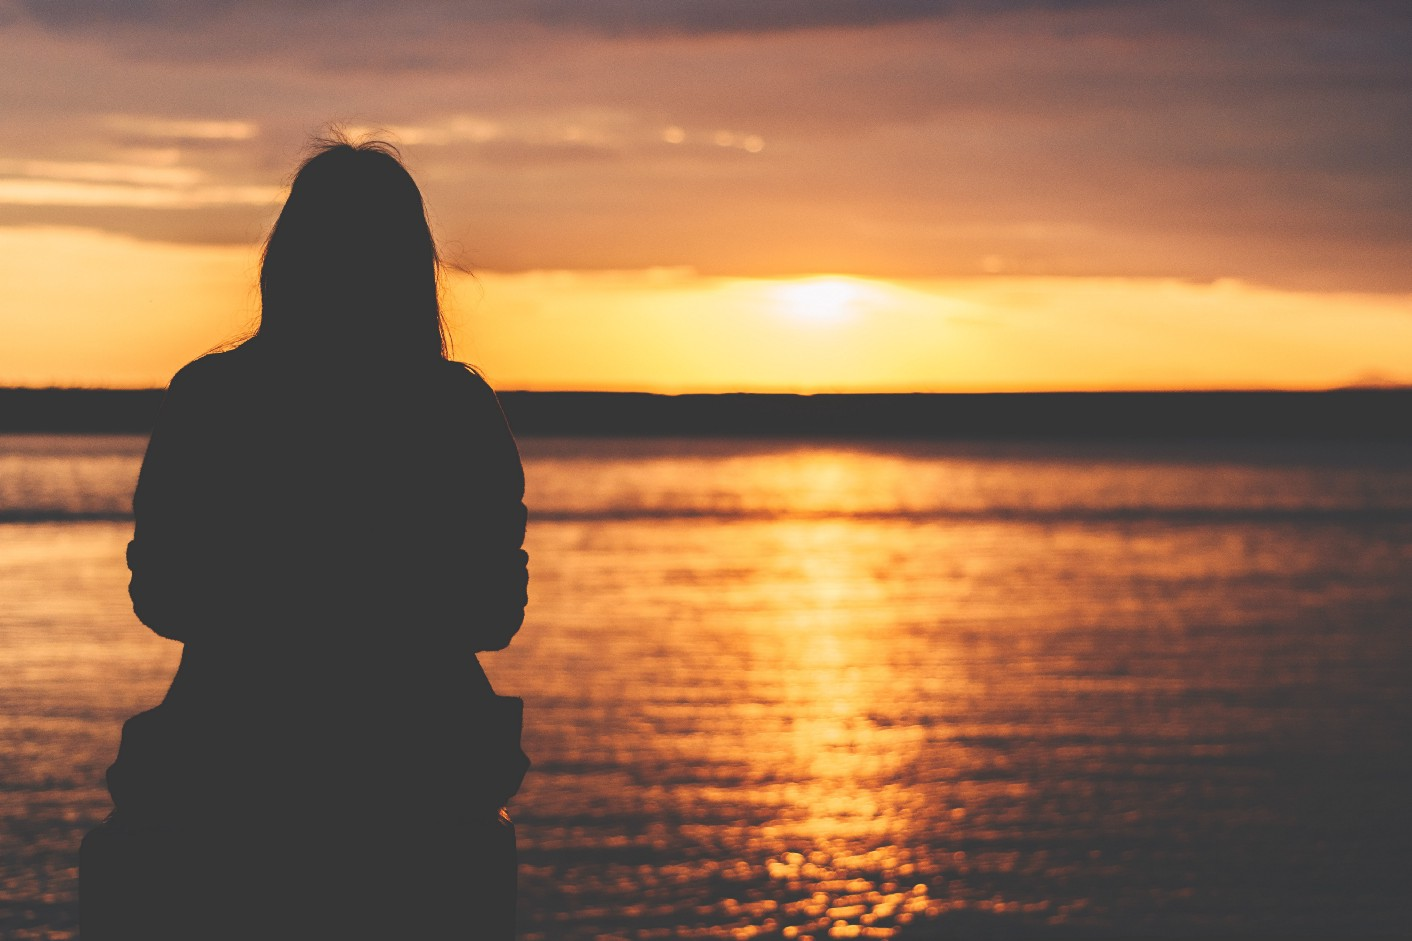 Image of silhouette looking at a sunset.